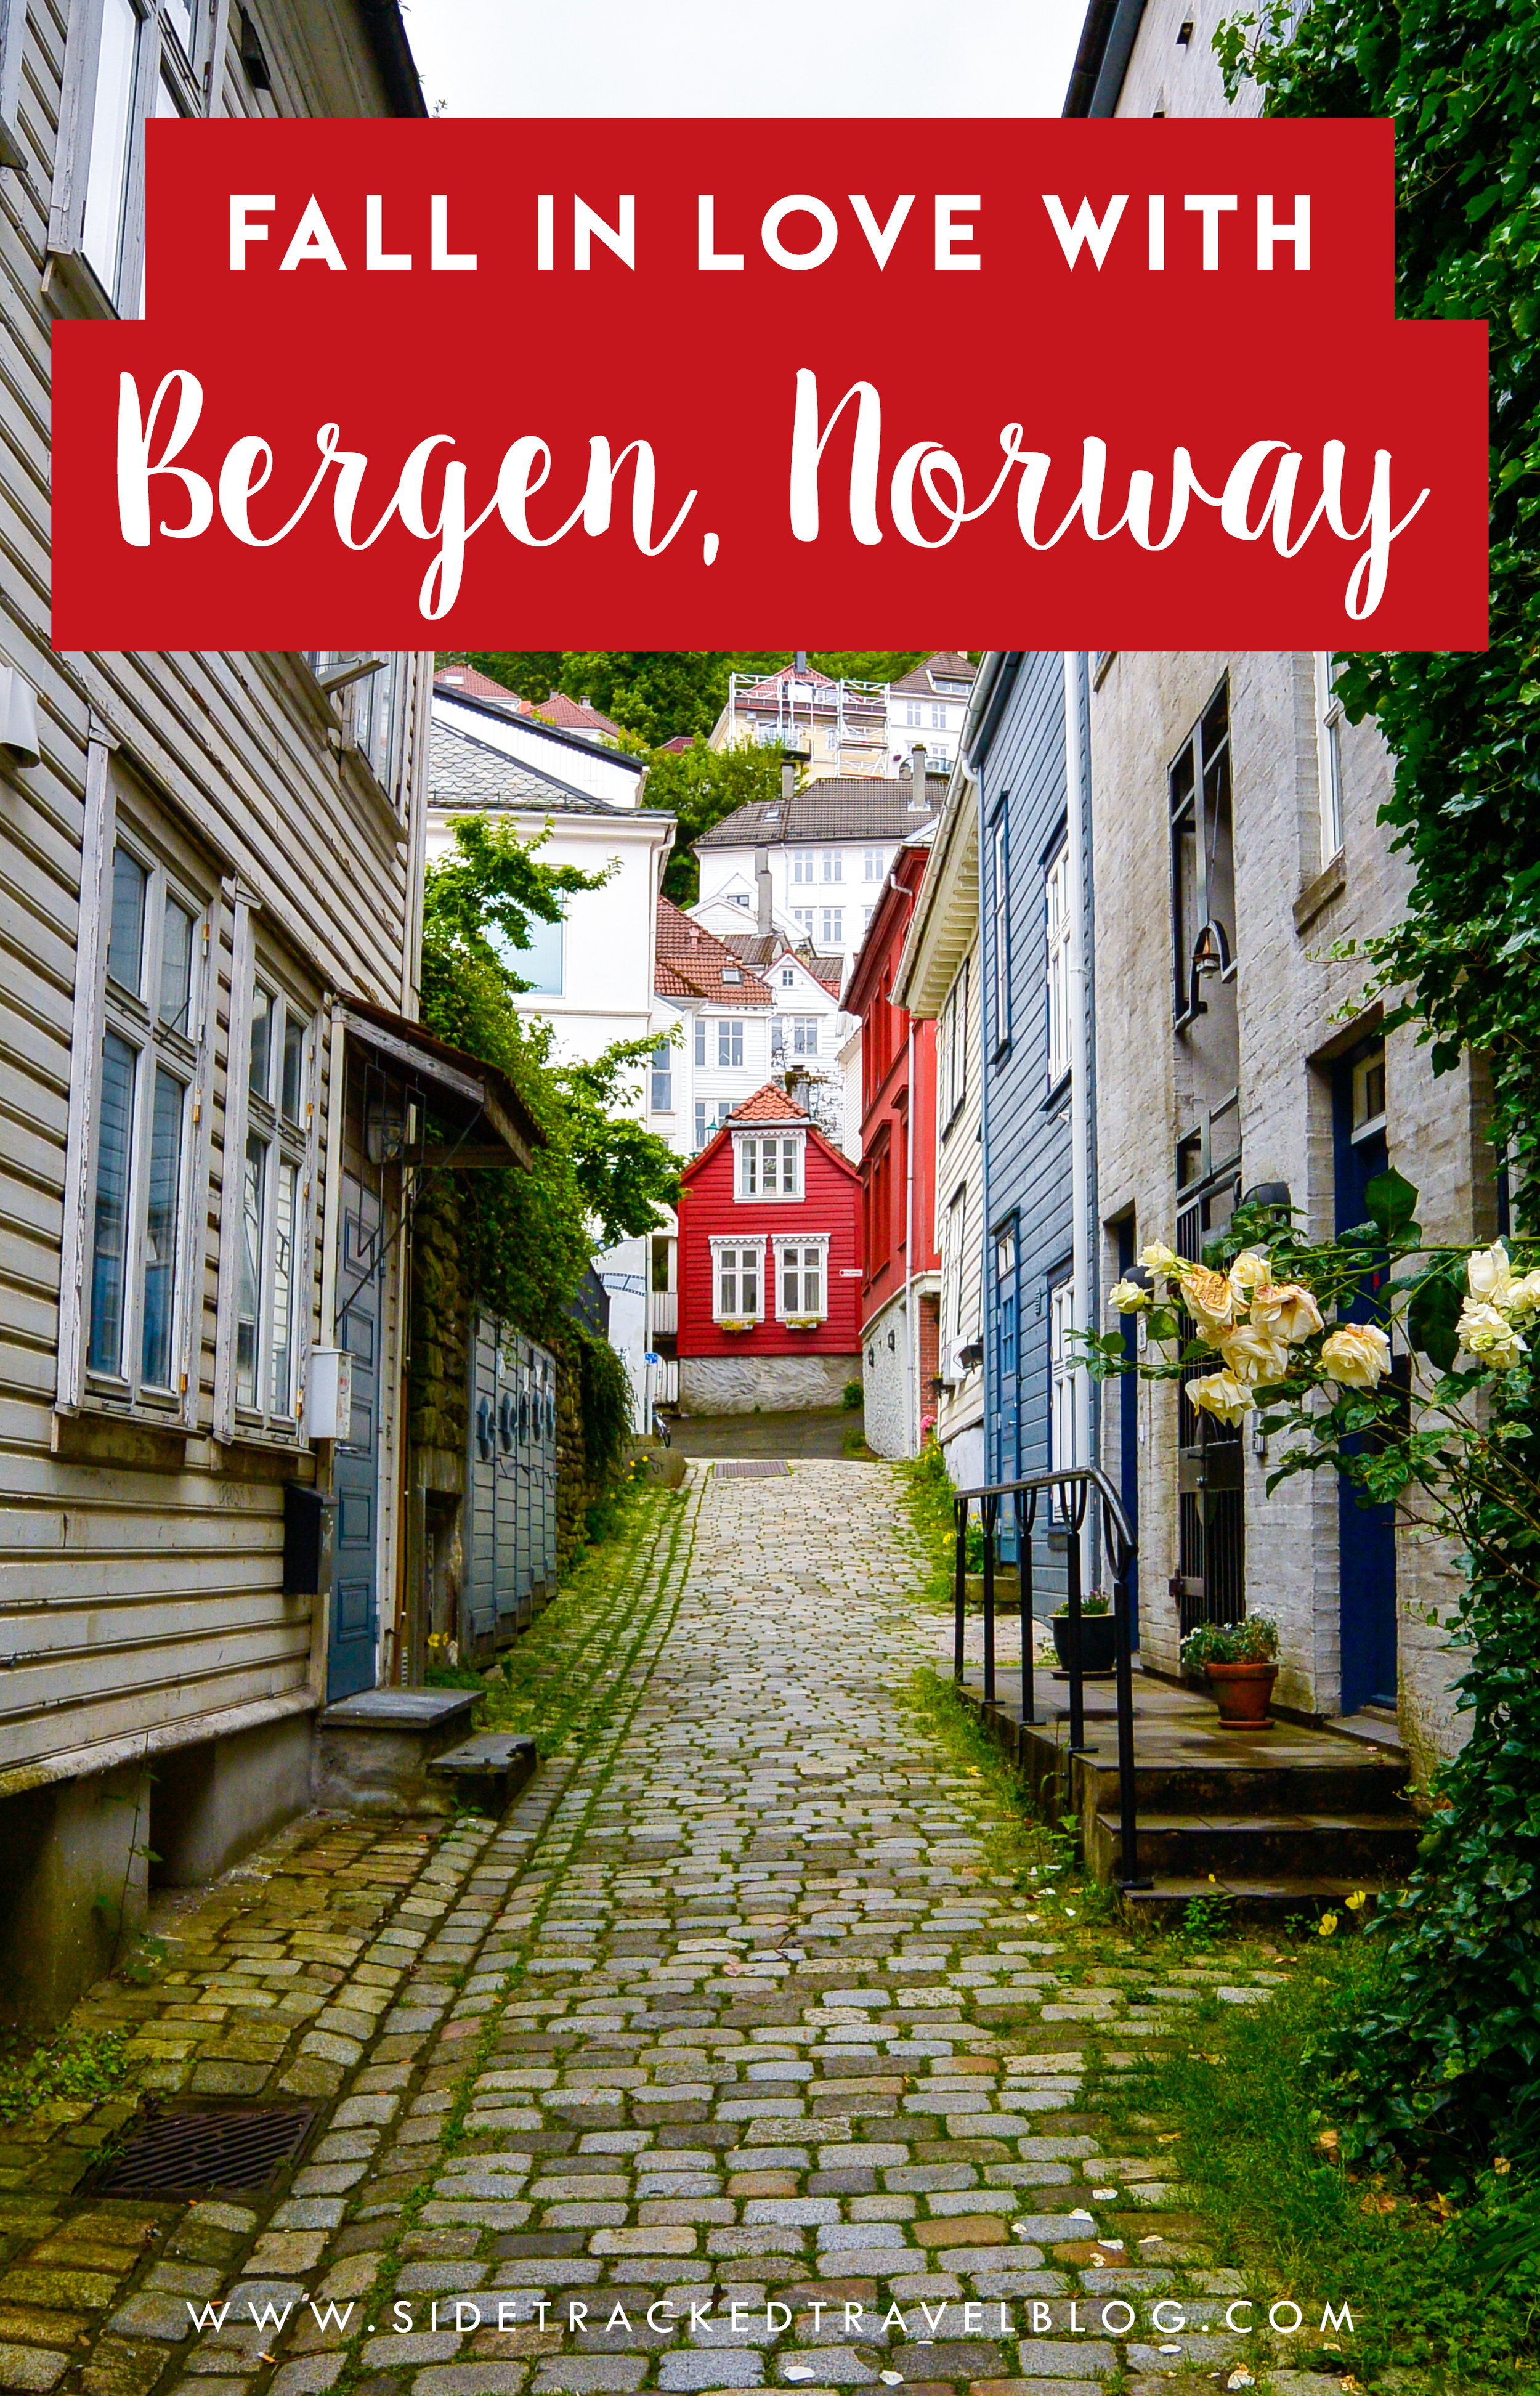 Netherlands Fall Wallpaper Fall In Love With Bergen Norway Sidetracked Travel Blog